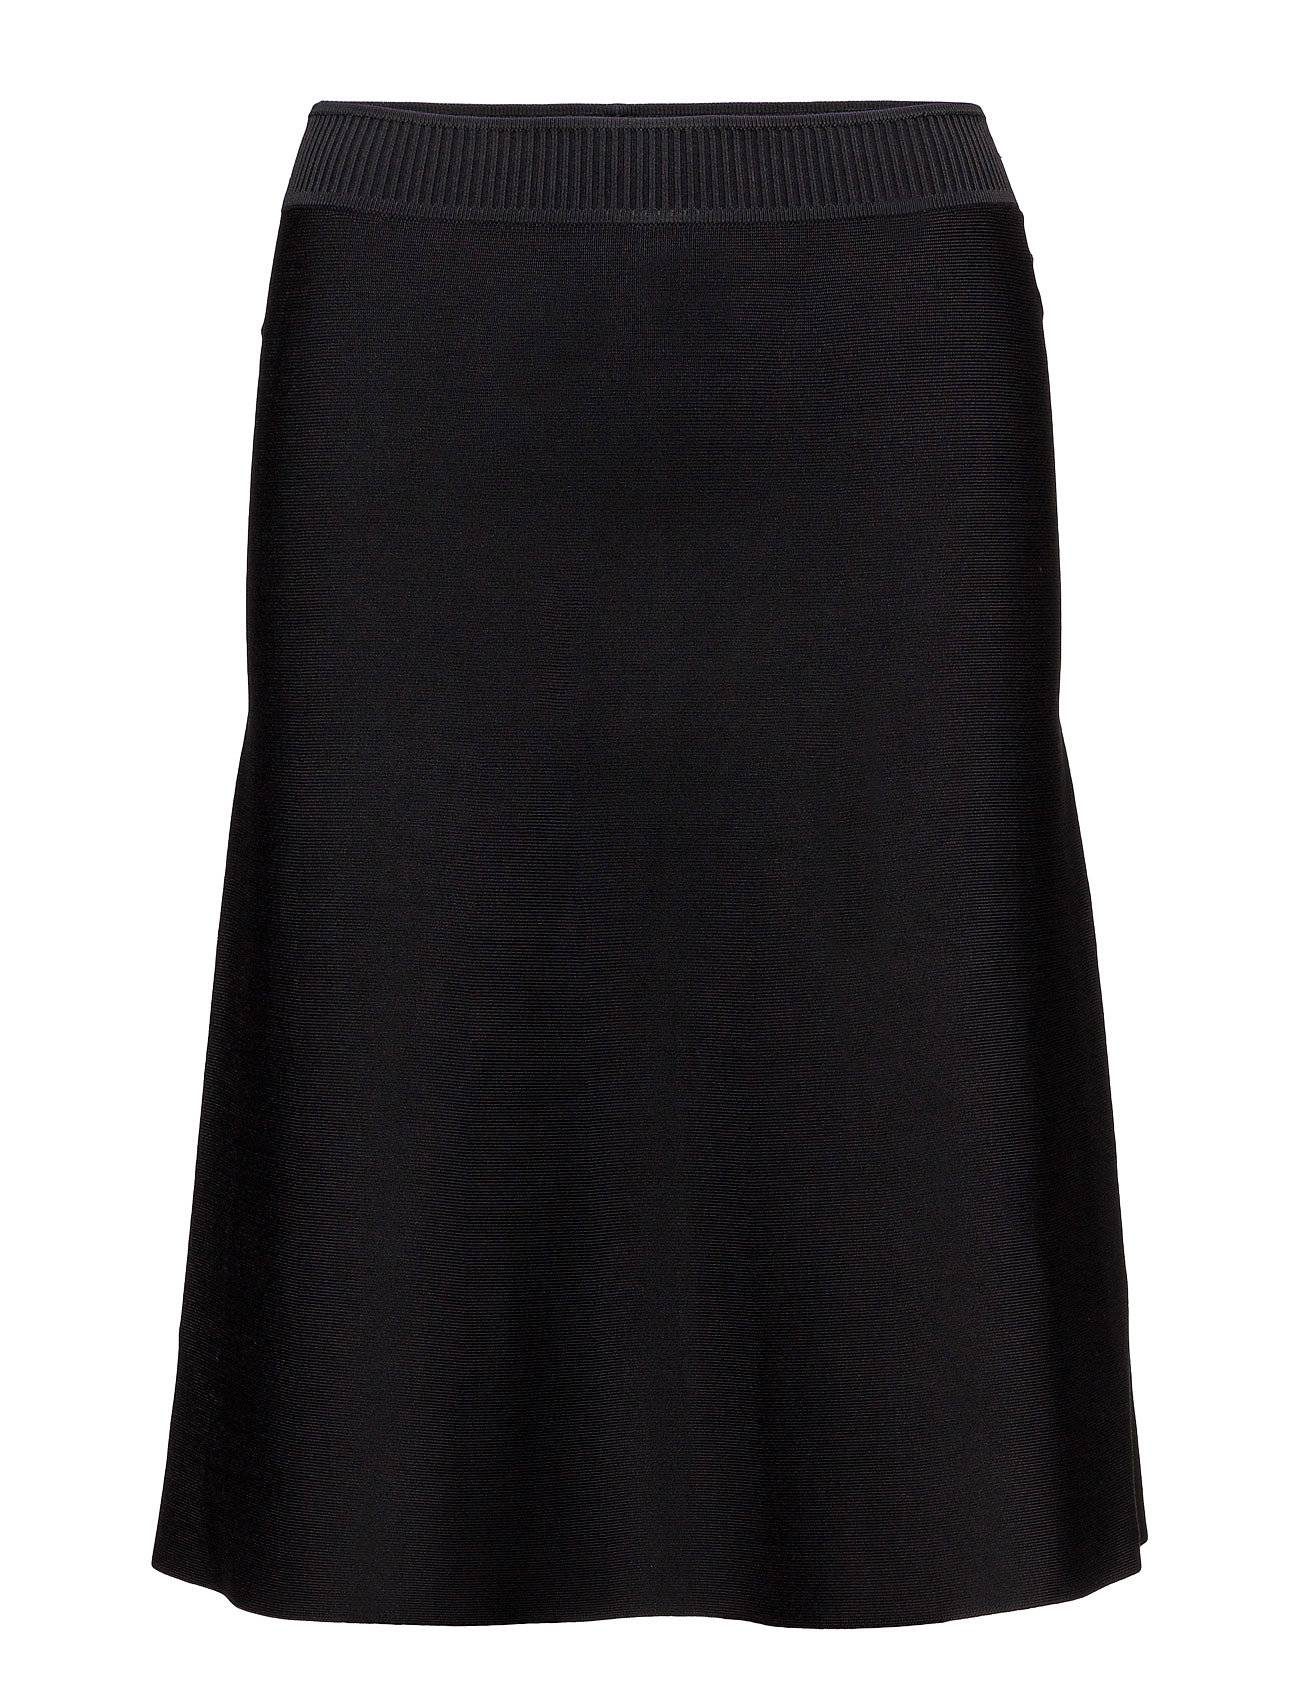 T by Alexander Wang Dull Rayon Knit A-Line Flare Skirt